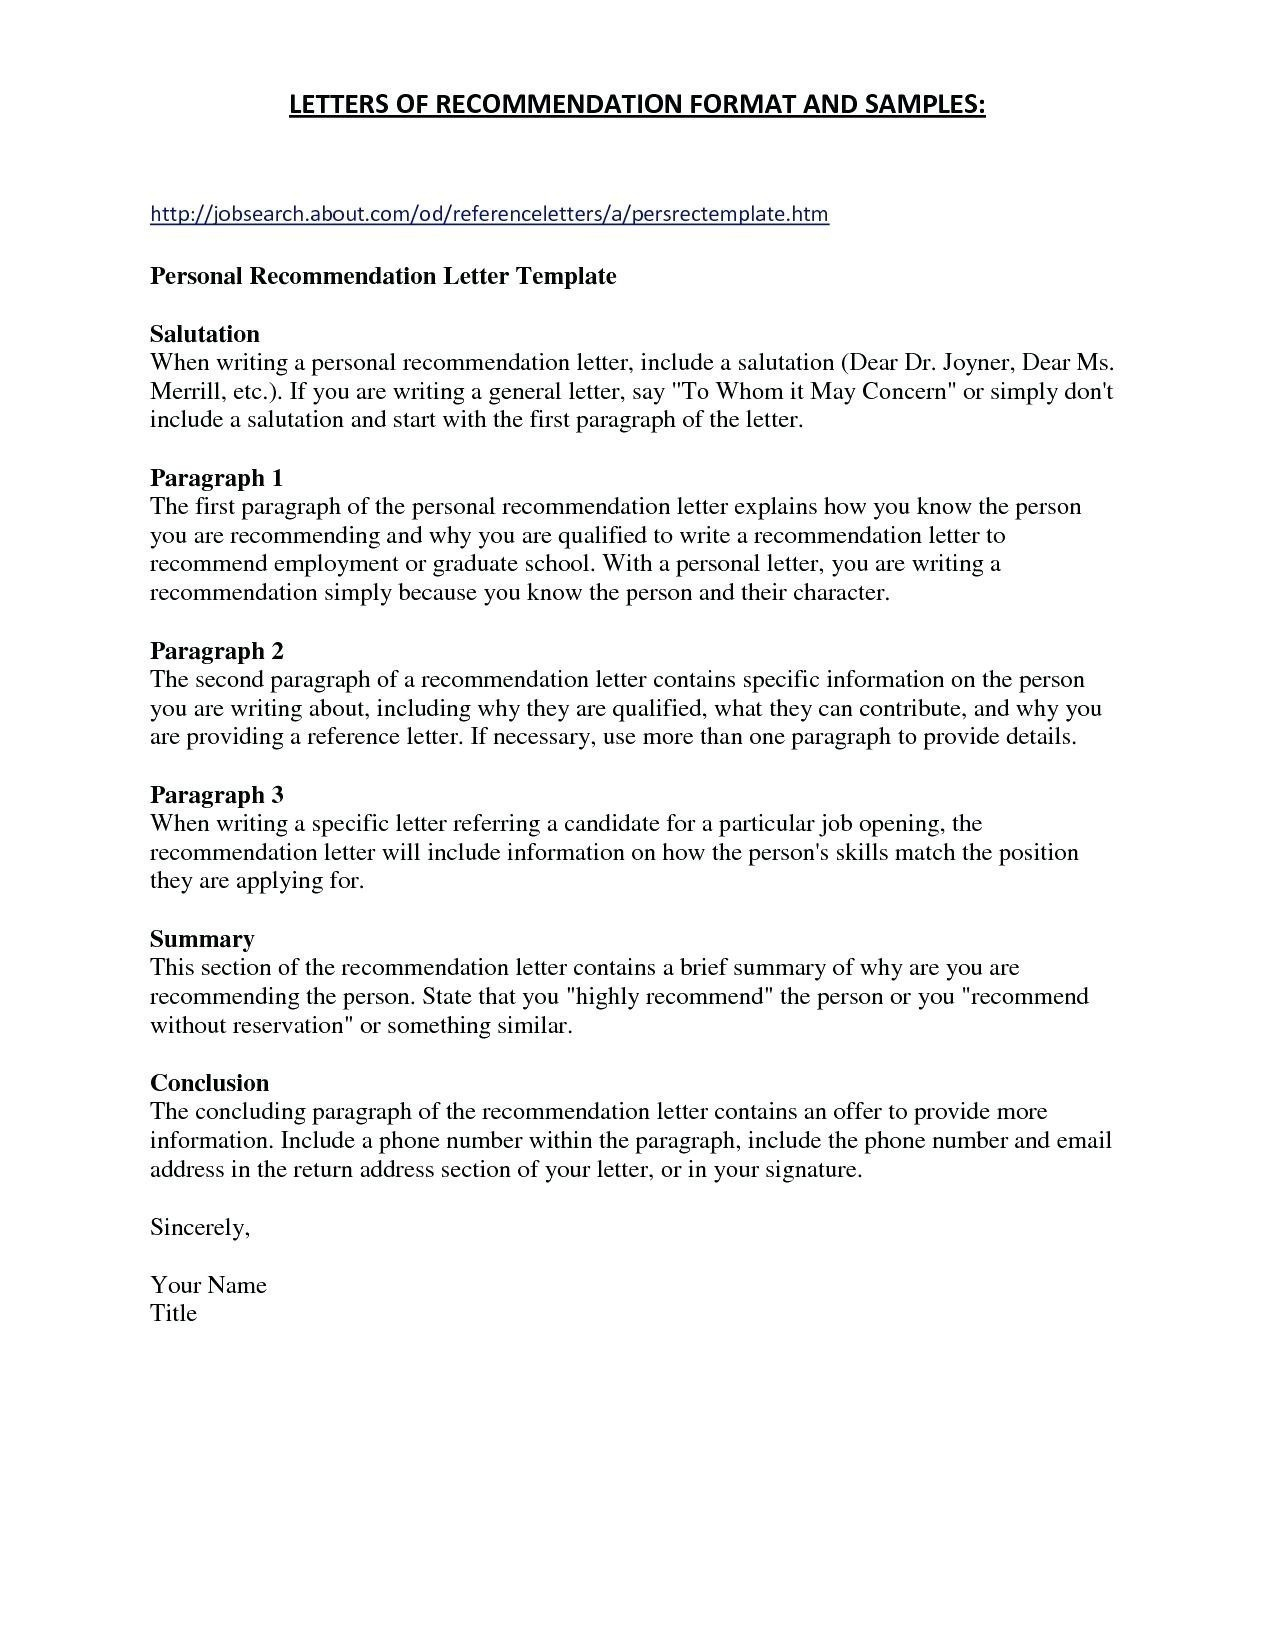 business contract termination letter template Collection-business termination letter template business contract termination letter template inspirationa sample cancellation services letter template best amazing gym 9j 18-p